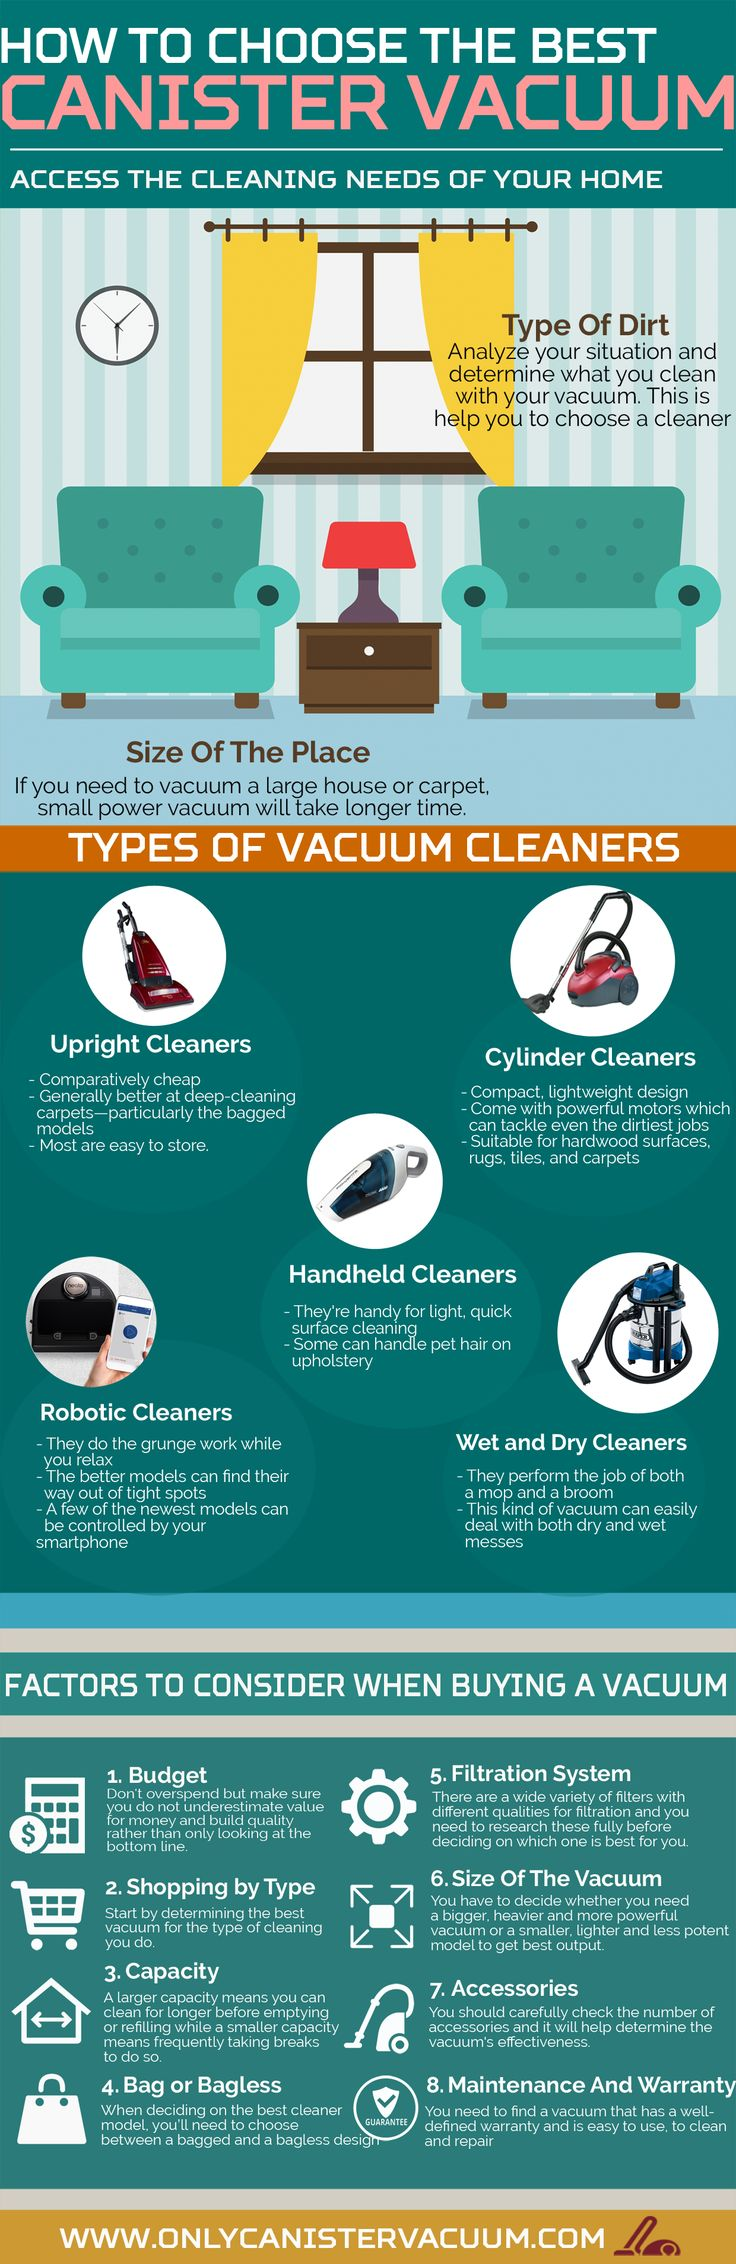 Only interested to know what is the best canister vacuum cleaners in the market? Check out our infographic as well as our website to explore our in-depth research guide on best canister vacuum